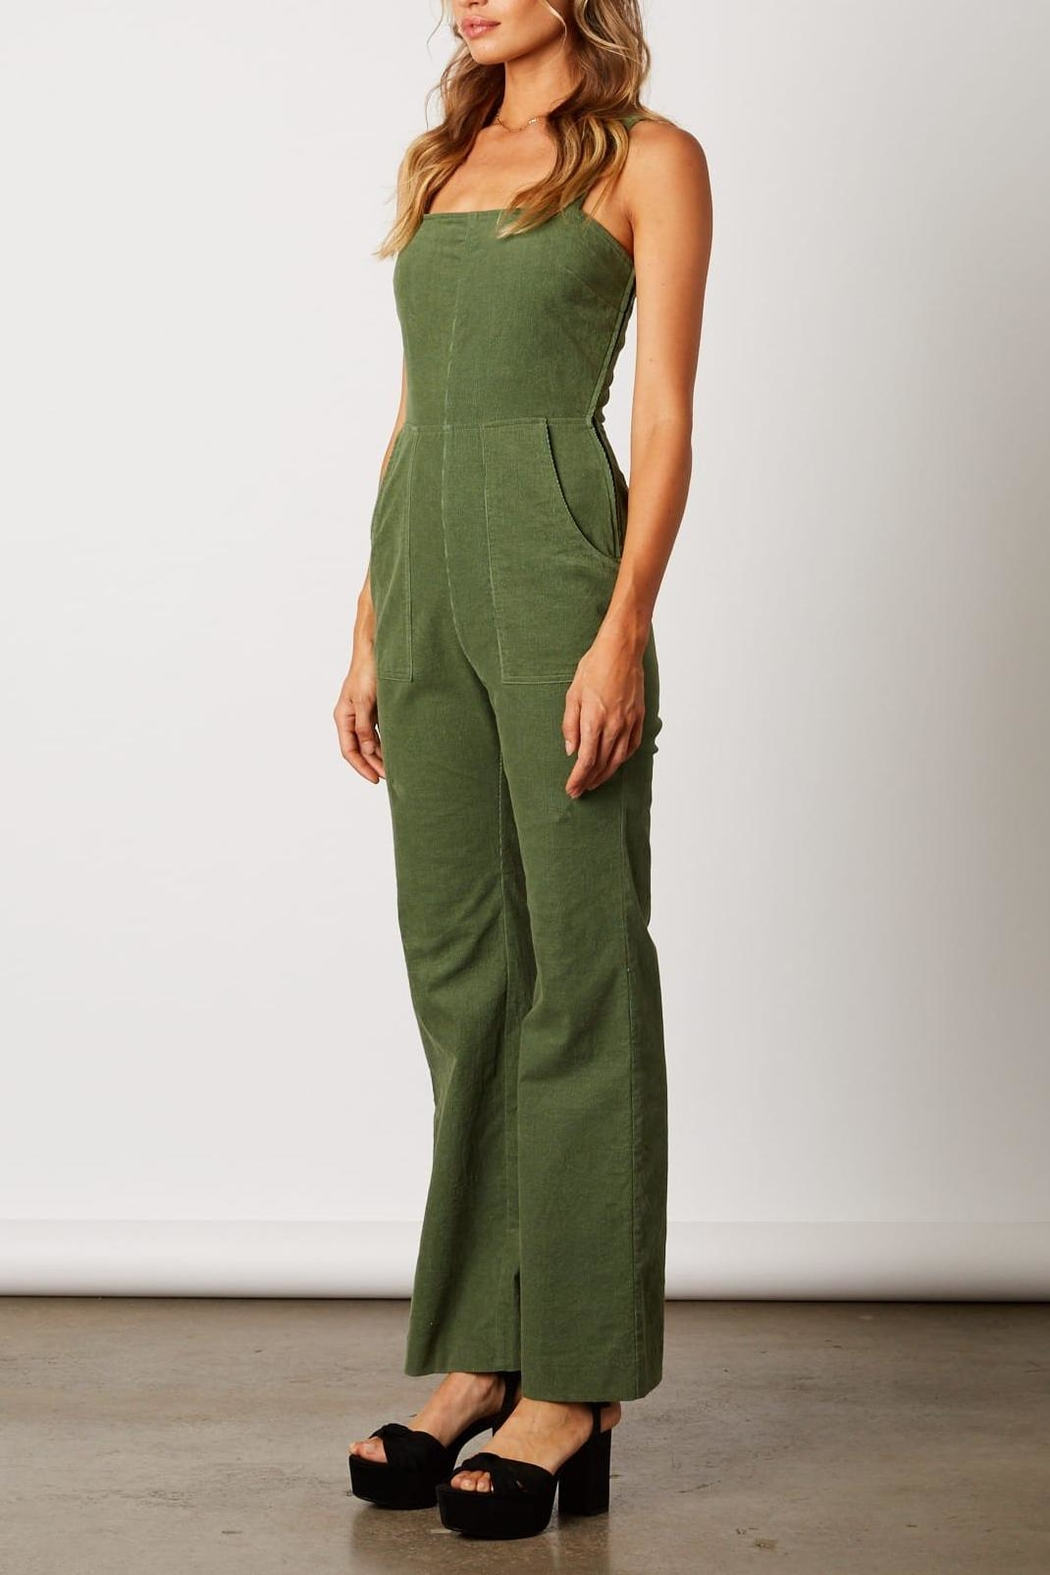 ca5d3e37fed Cotton Candy LA Olive-Green Corduroy Jumpsuit from Virginia by ...